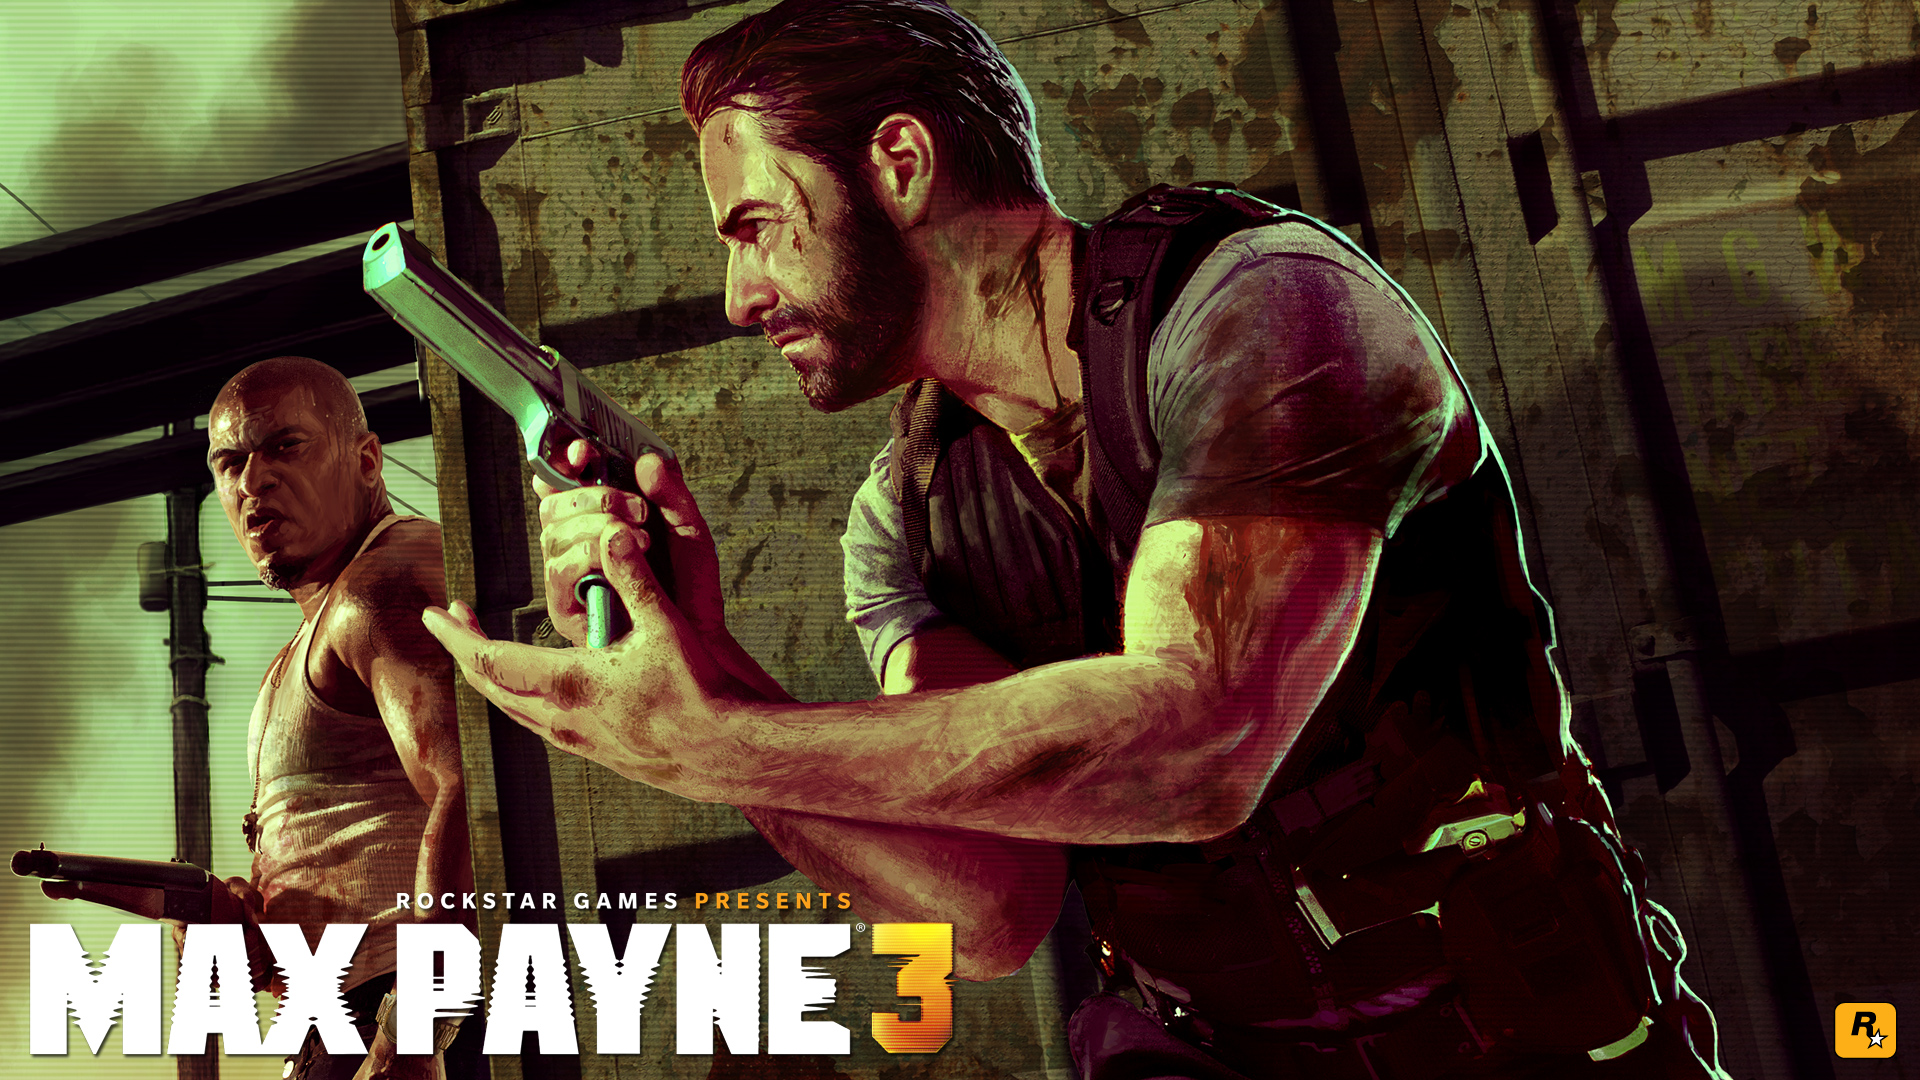 Max Payne 3 Wallpapers NetworkNews 1920x1080